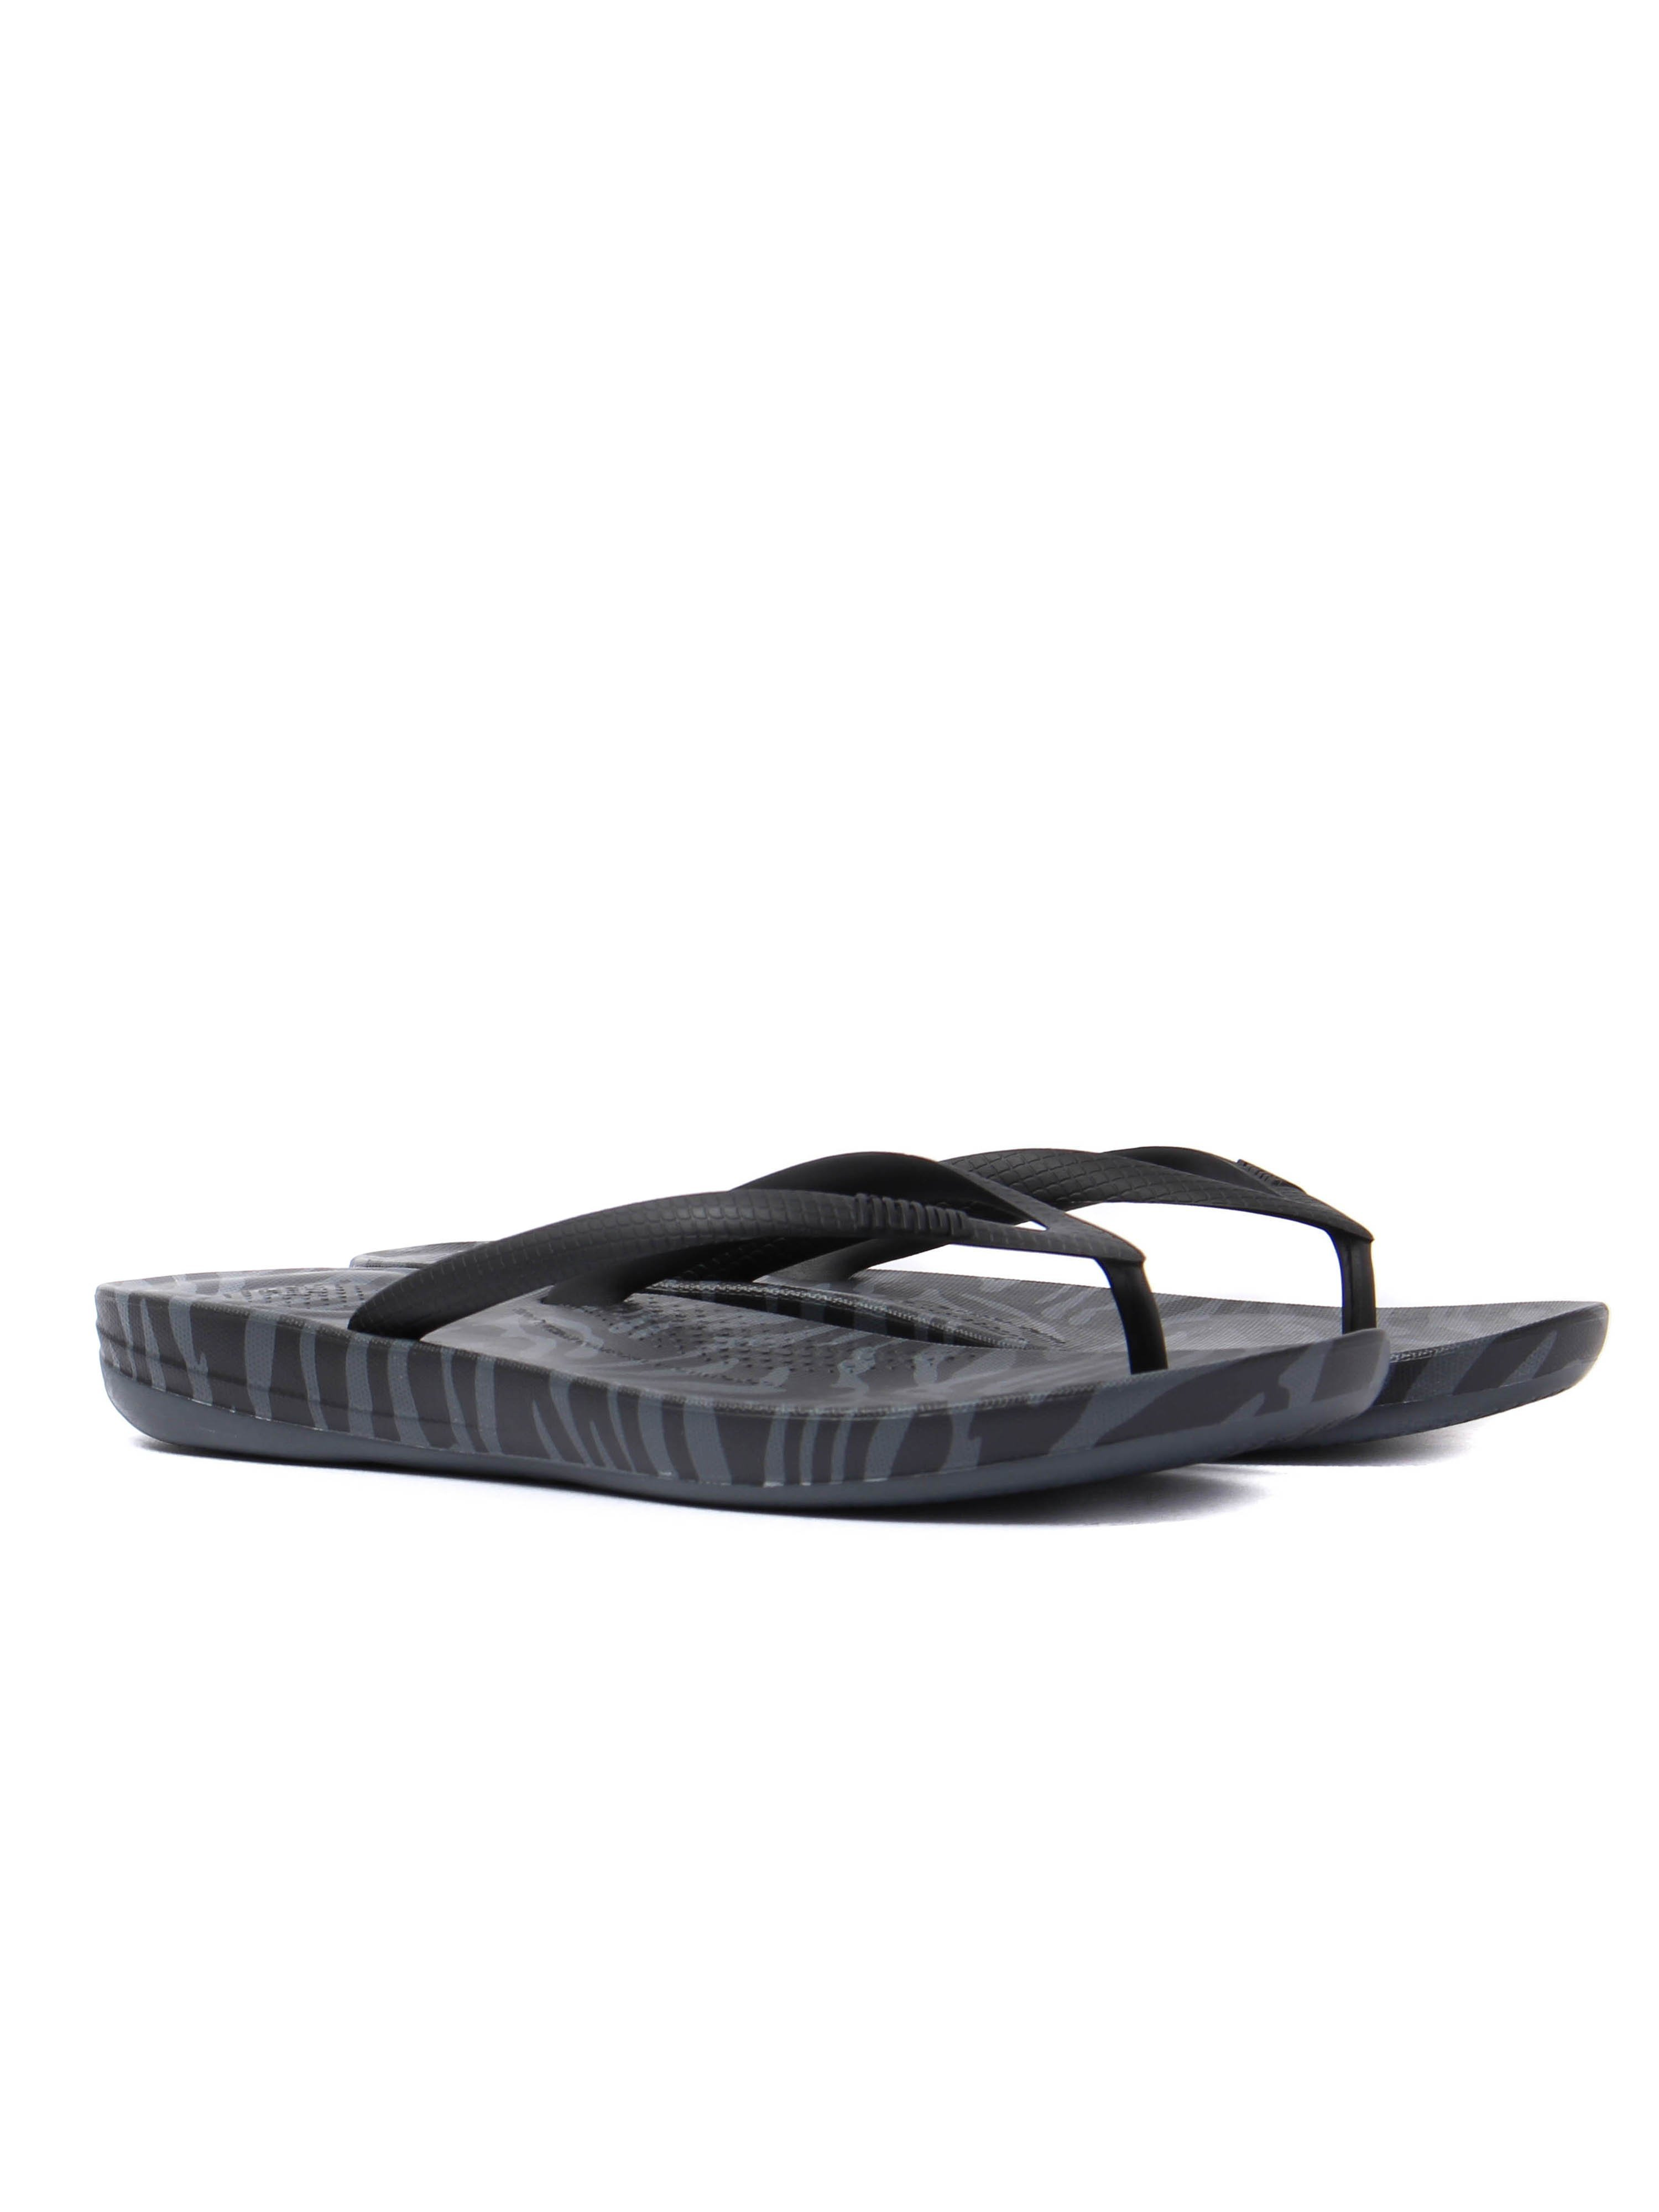 FitFlop Women's IQushion Ergonomic Flip Flops - Charcoal Tiger Print